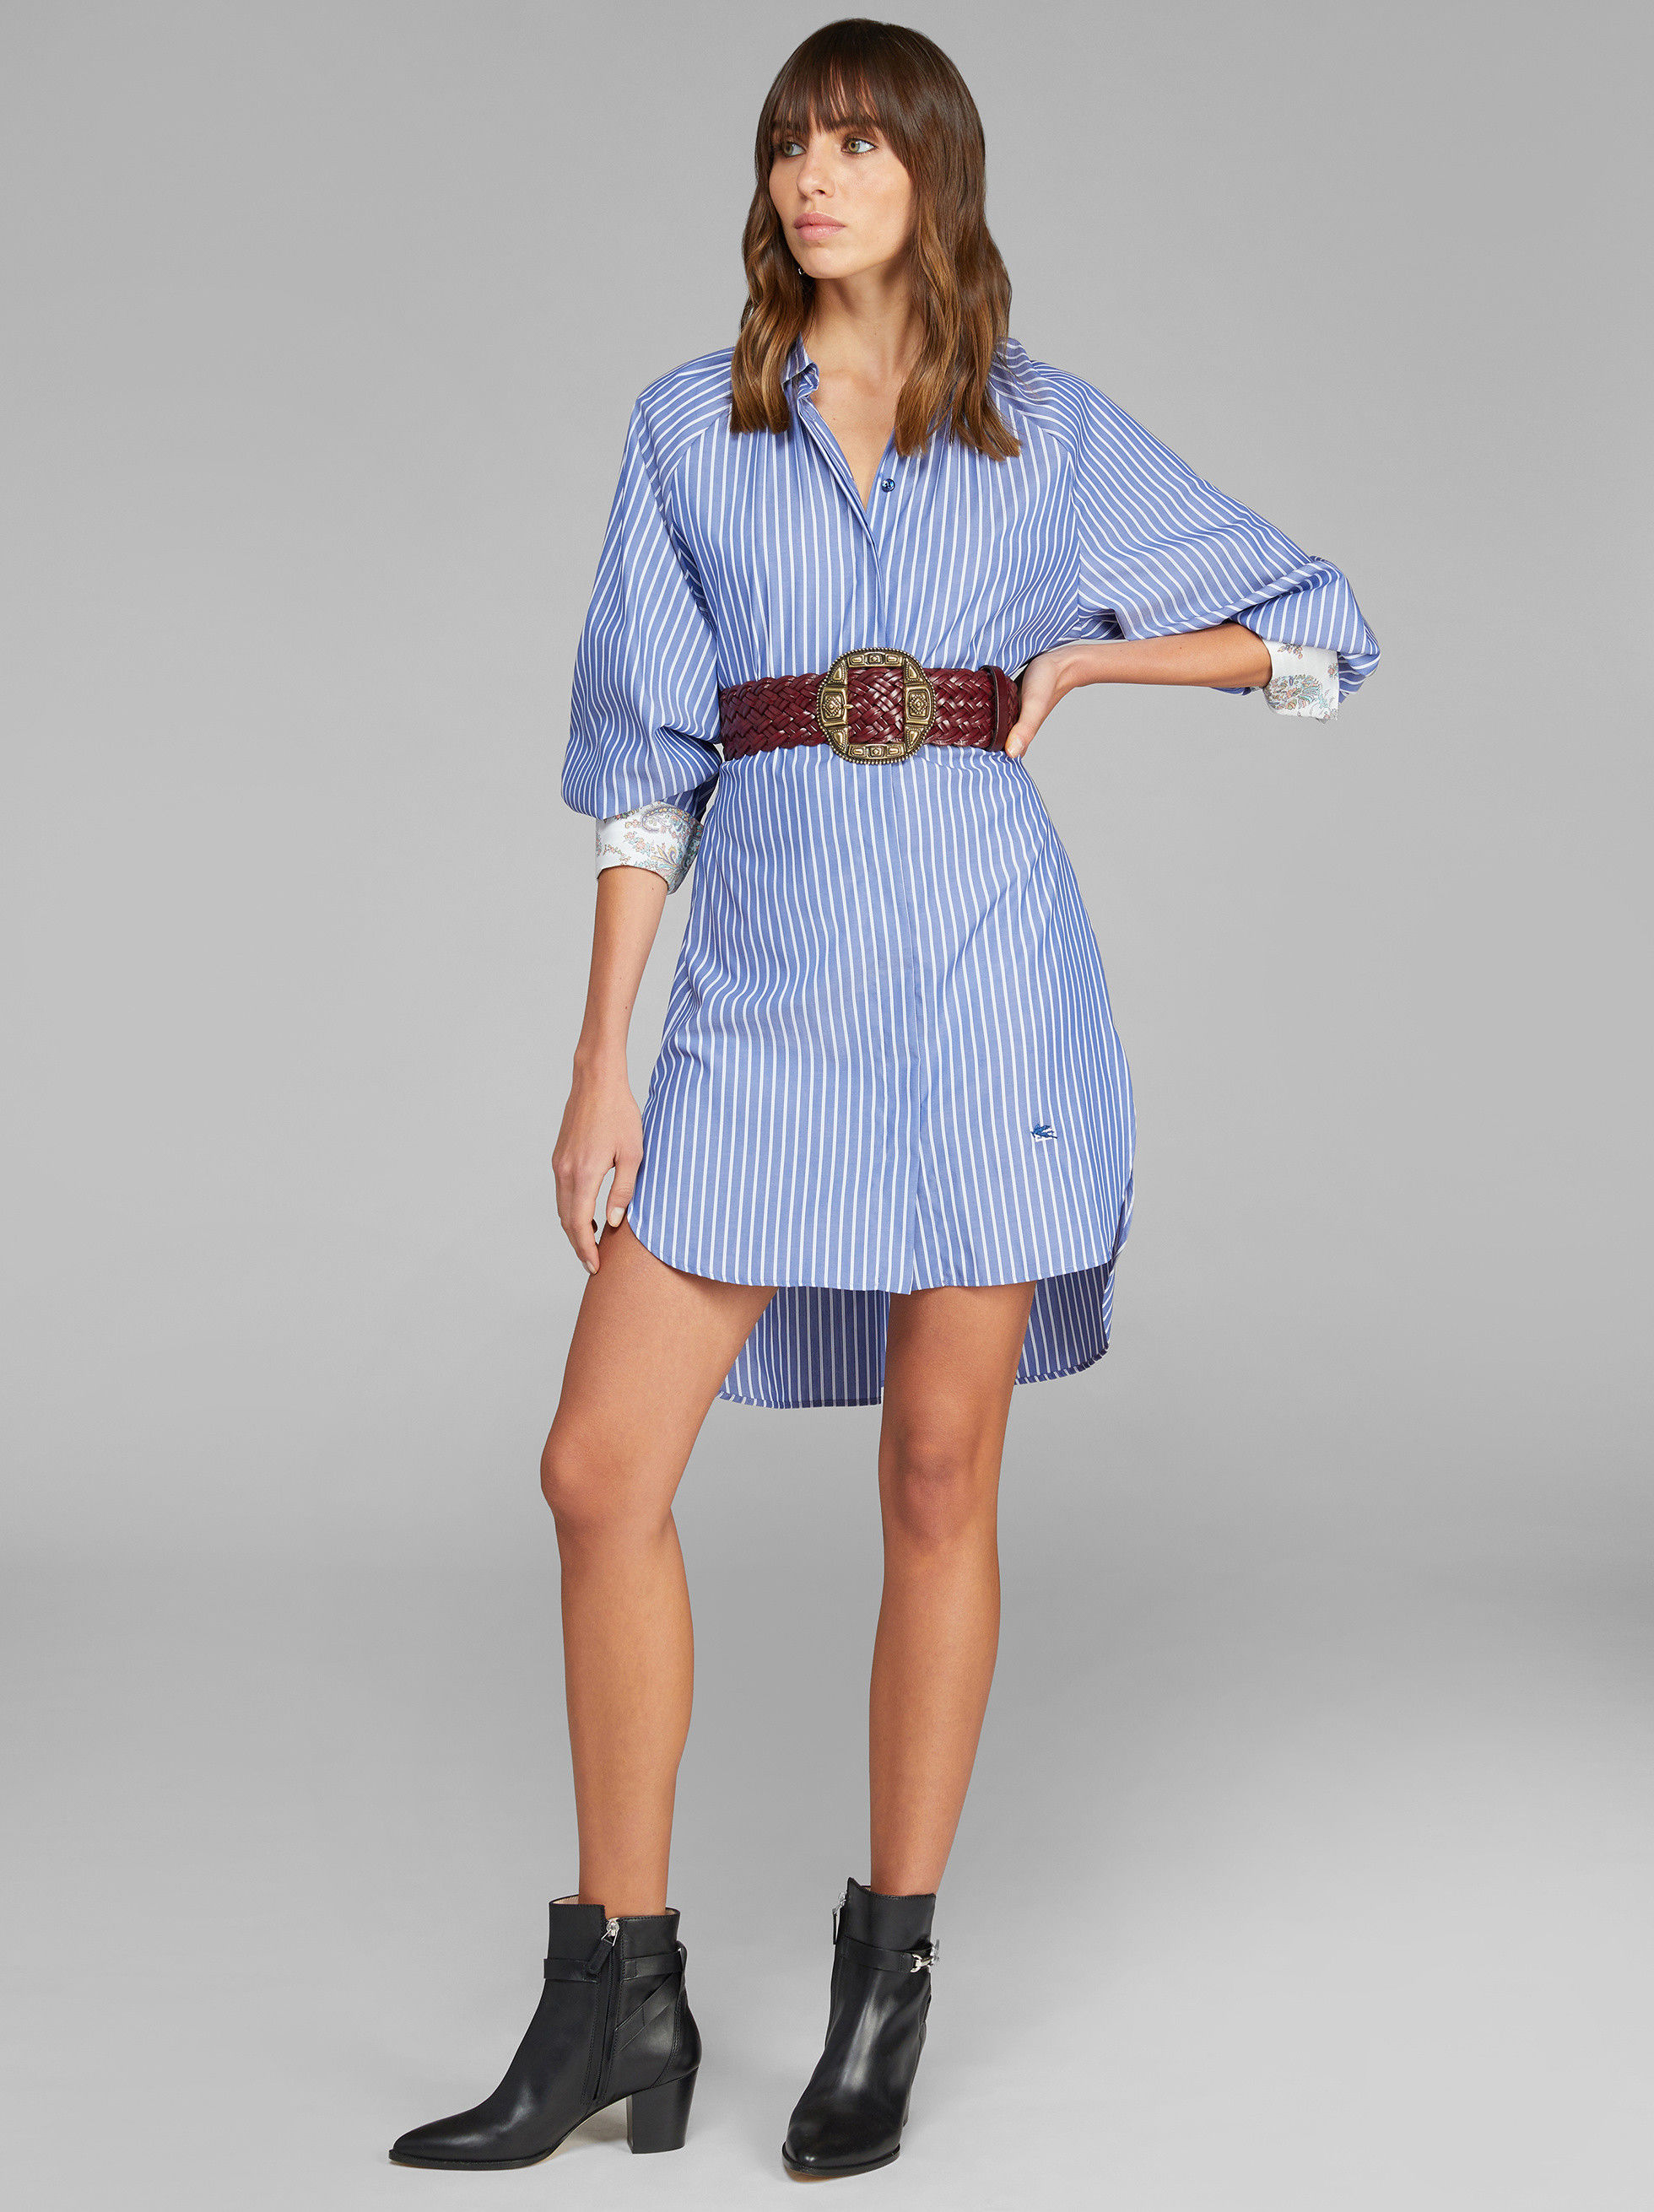 STRIPED SHIRT WITH PEGASO EMBROIDERY